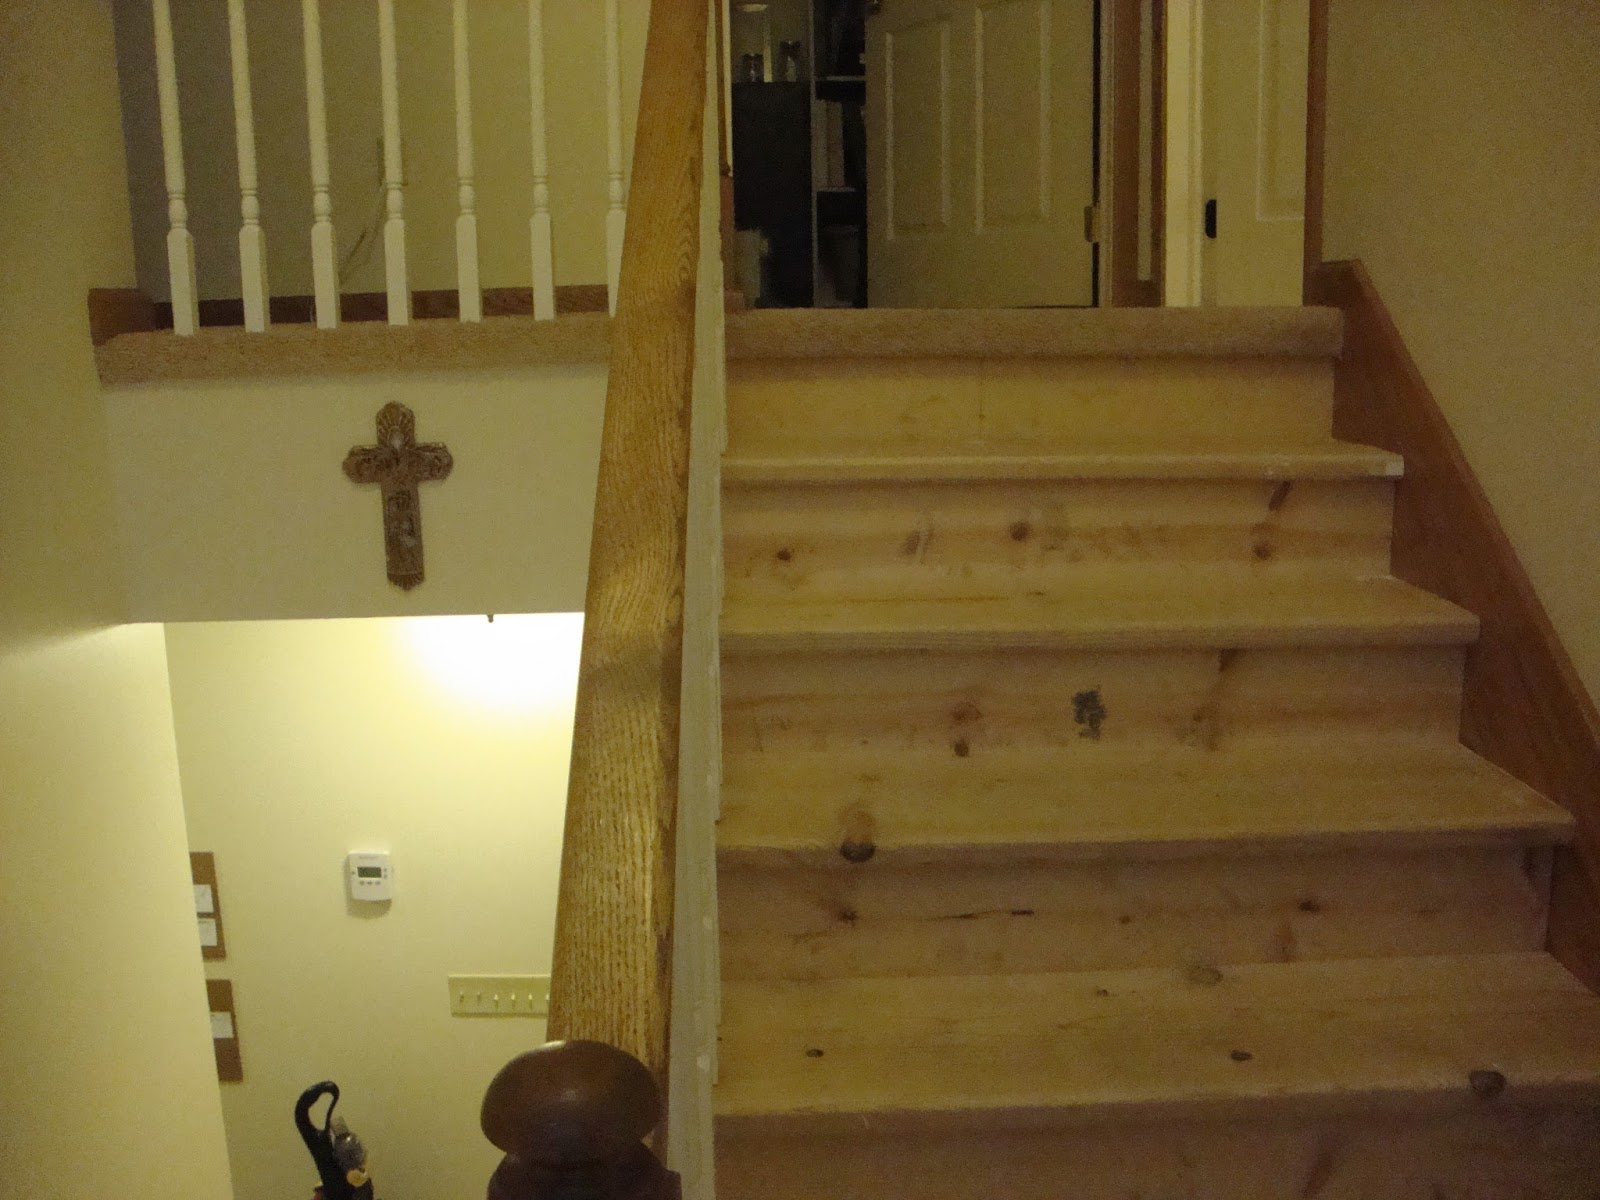 Stair and filling the various nail holes with stainable wood putty